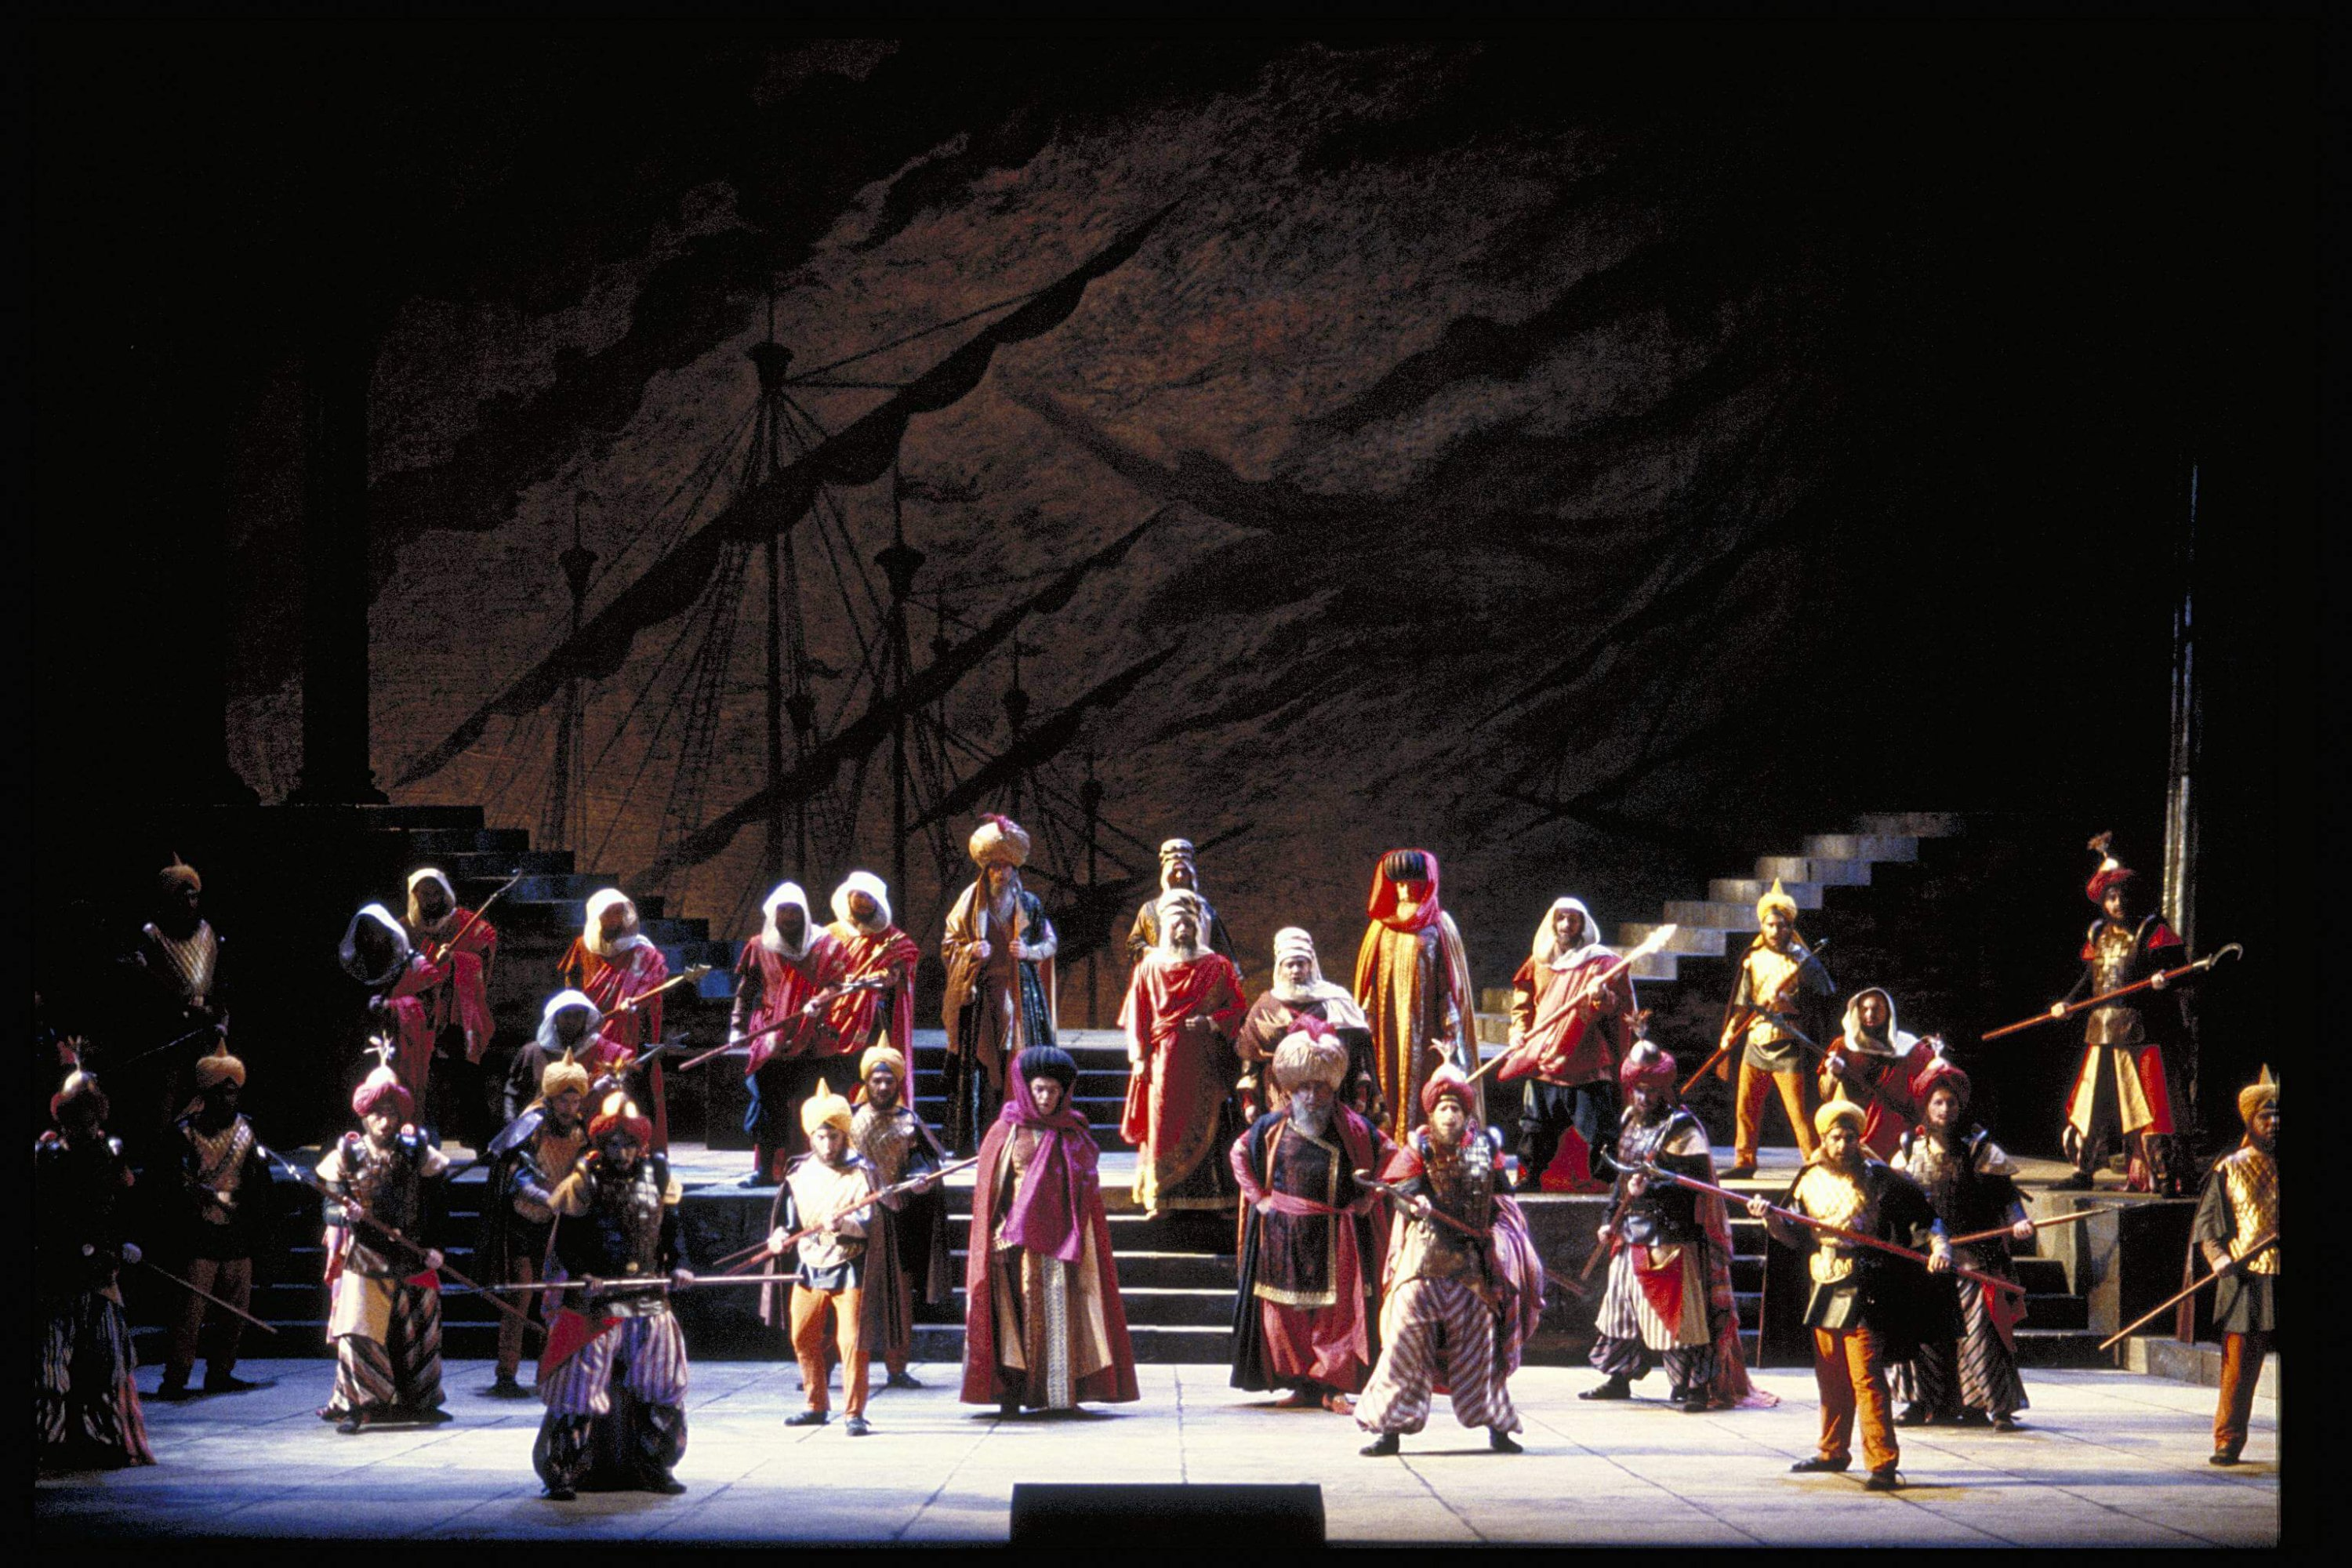 """This undated photo shows a representation of Gioachino Rossini's """"Maometto II' at San Francisco Opera House. (Photo by Getty Images)"""